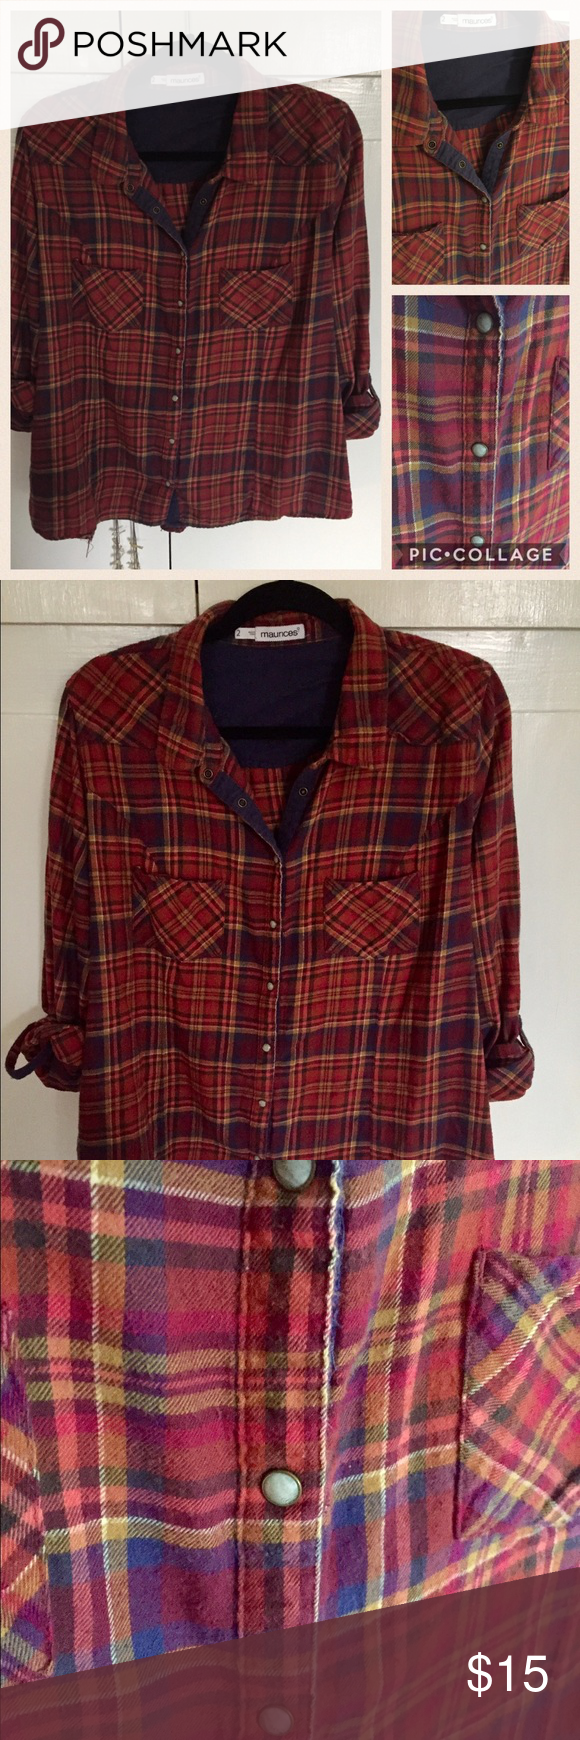 Flannel shirts yellow  Maurices Flannel Shirt x  Flannel shirts Flannels and Conditioning